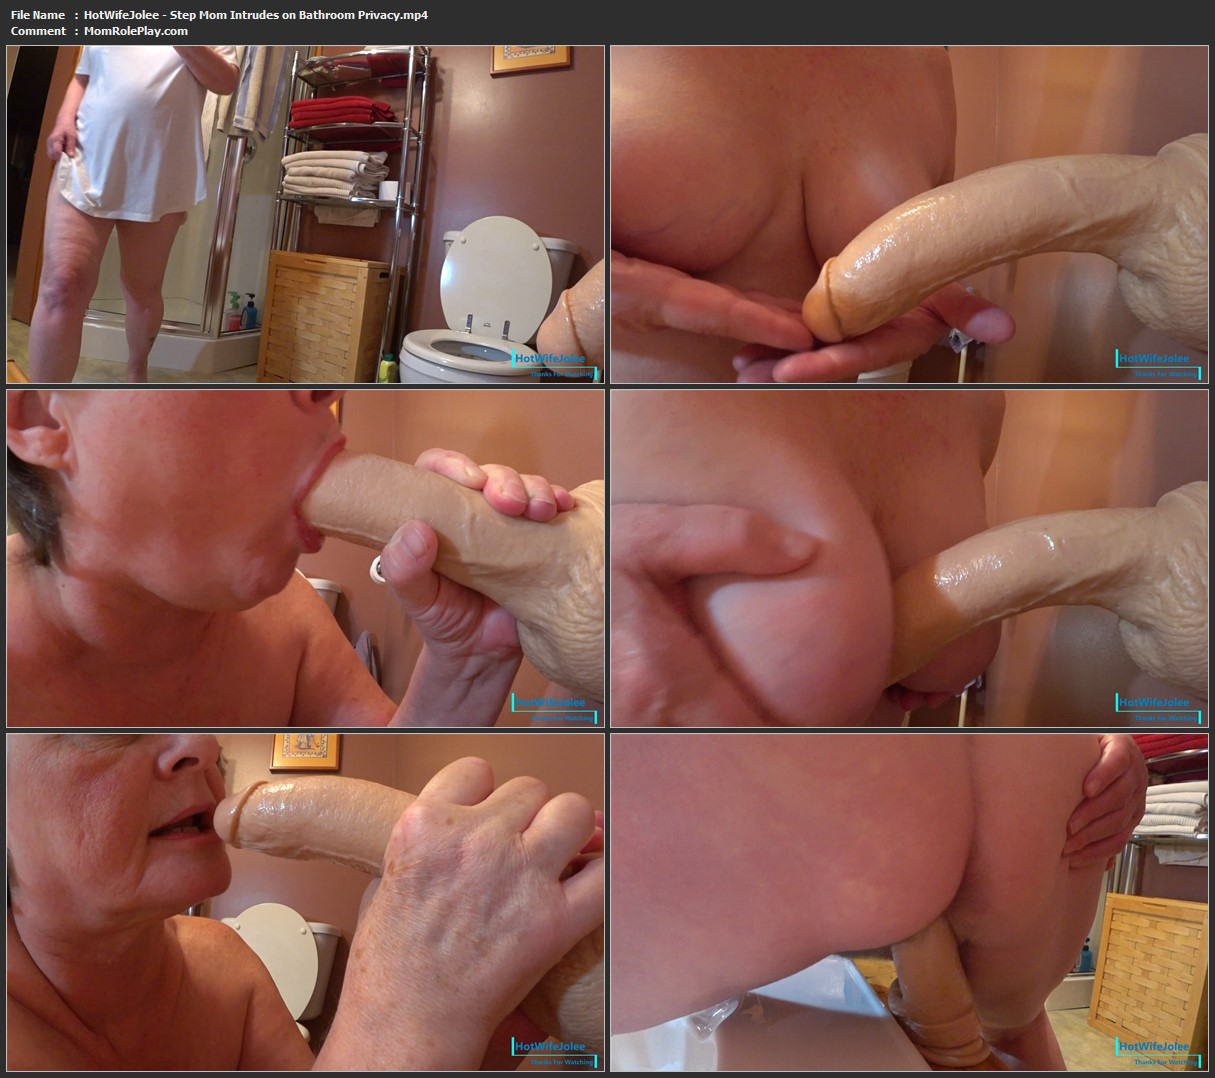 HotWifeJolee - Step Mom Intrudes on Bathroom Privacy